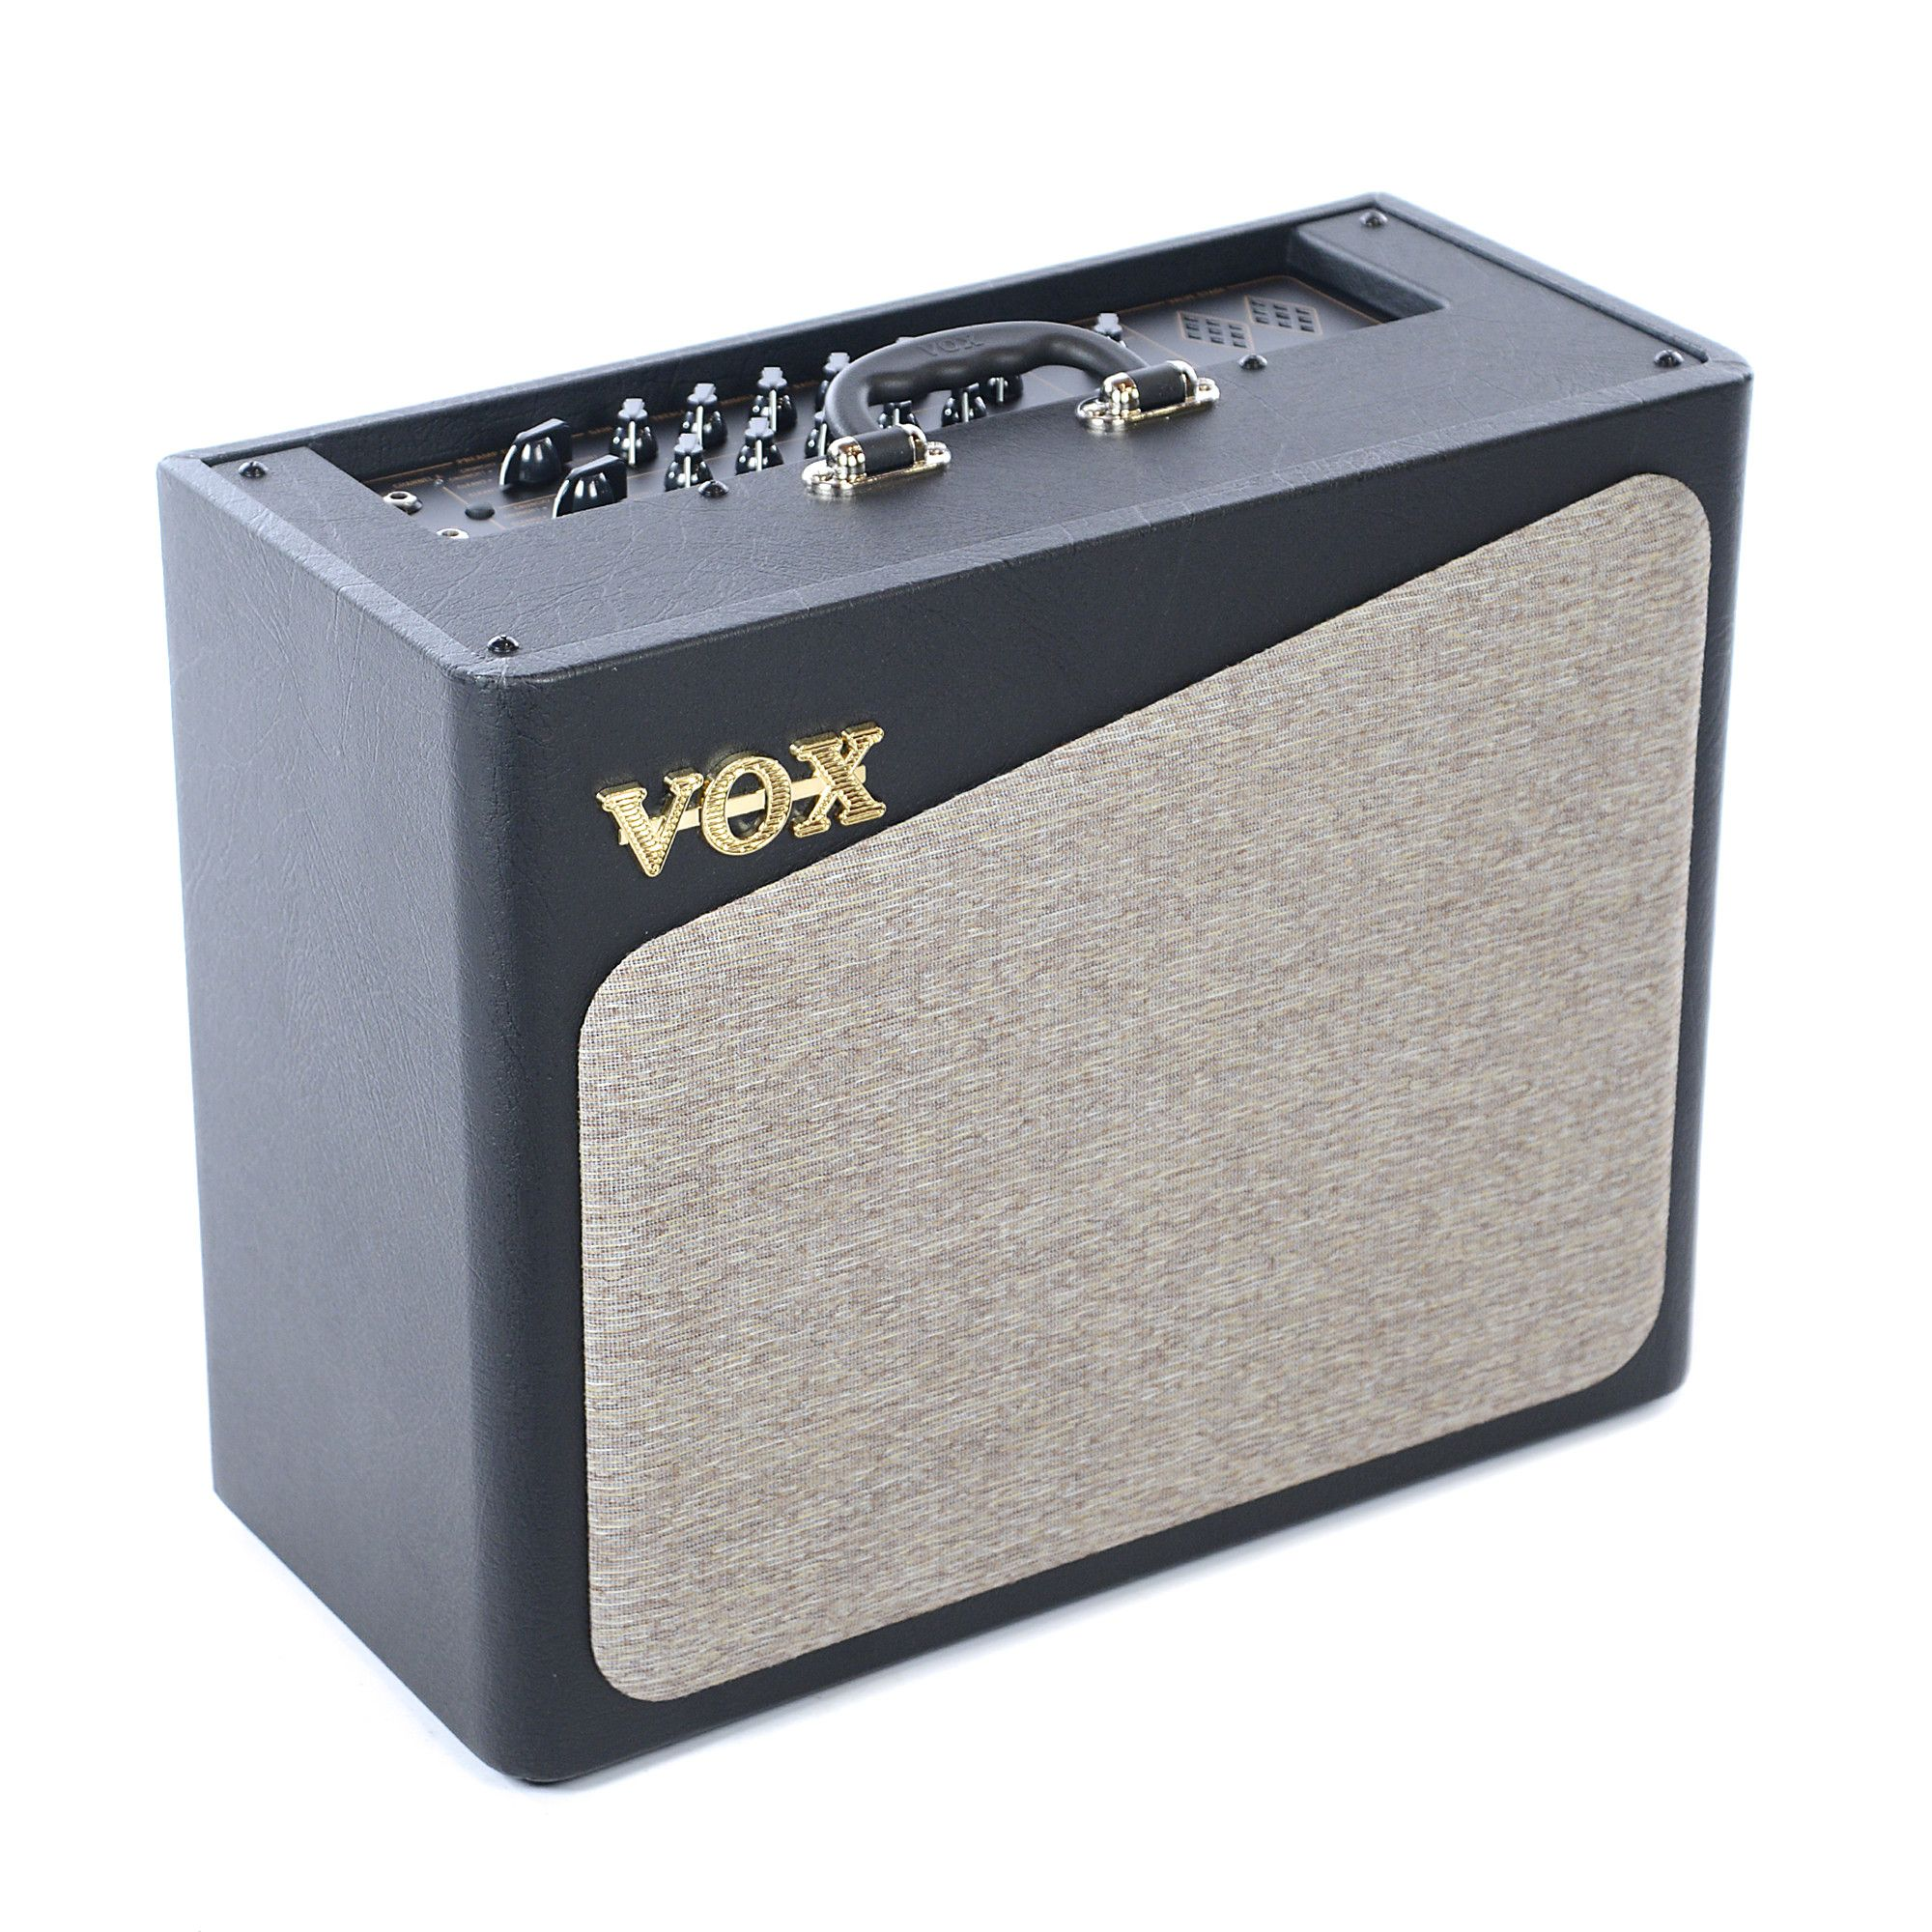 Vox Av 30 : the vox av30 analog valve modeling amp is a gigging musician 39 s best friend it packs the same ~ Russianpoet.info Haus und Dekorationen